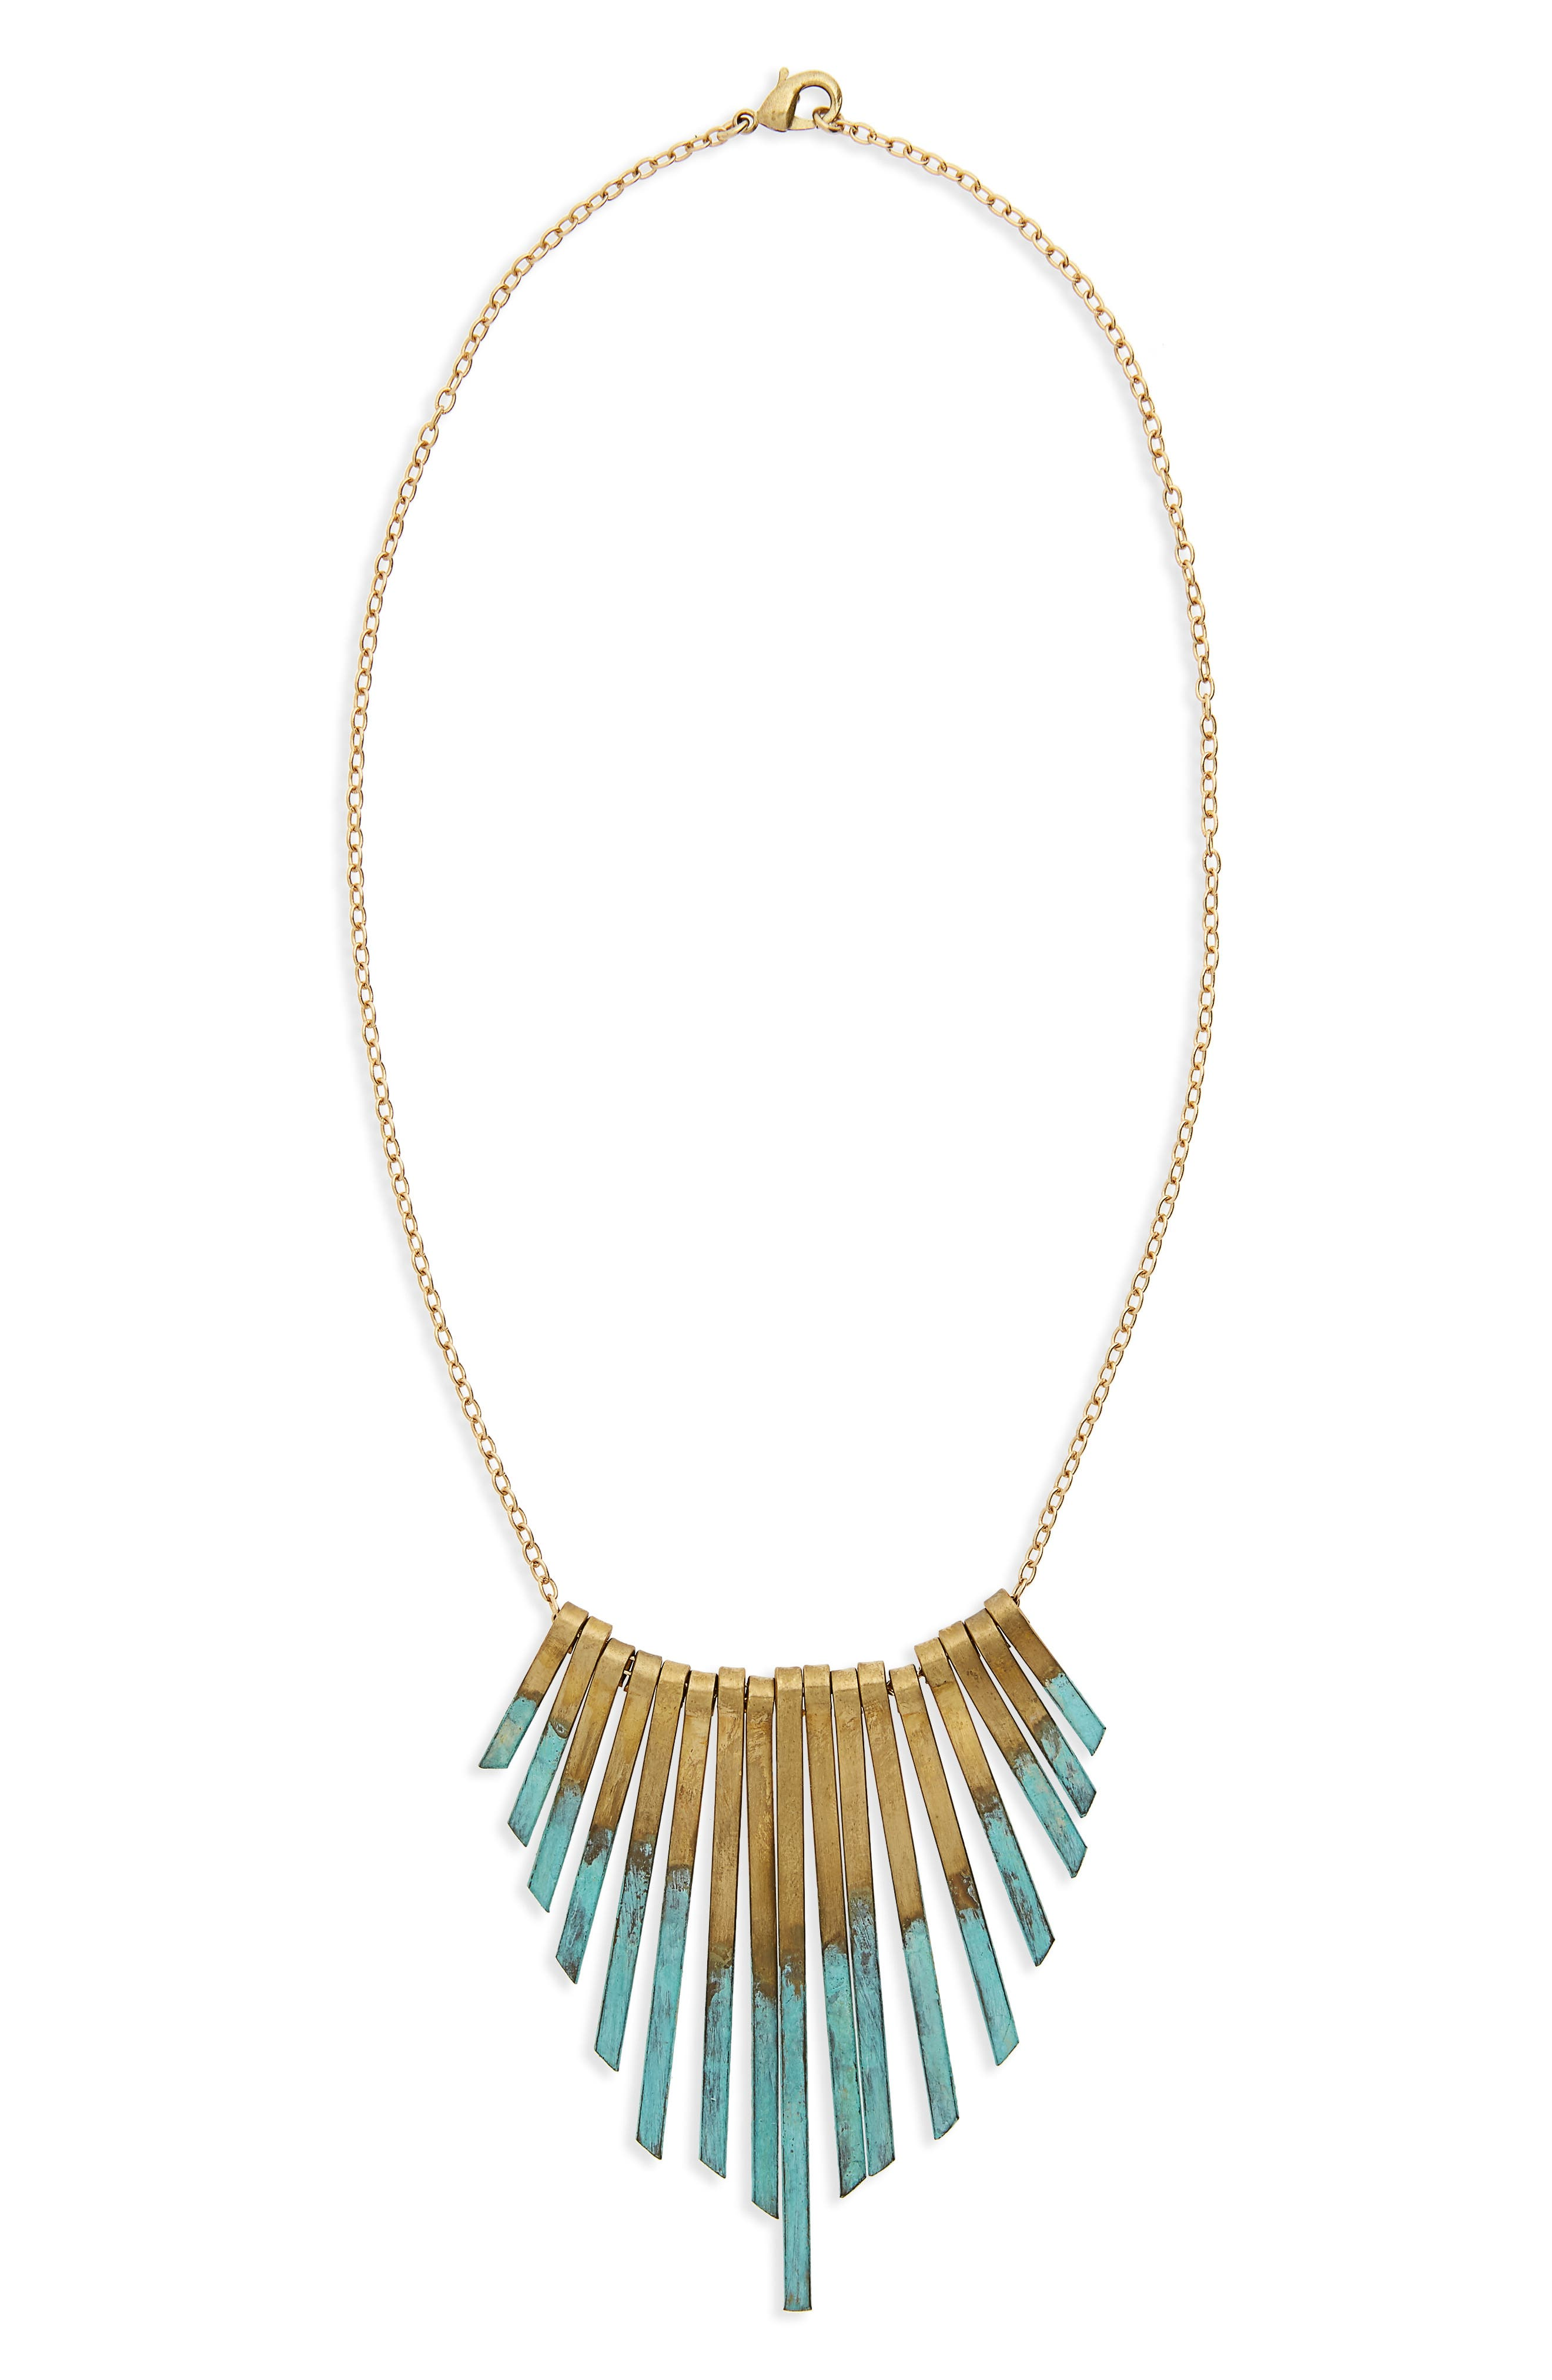 Patina Stick Necklace,                             Main thumbnail 1, color,                             Gold/ Multi